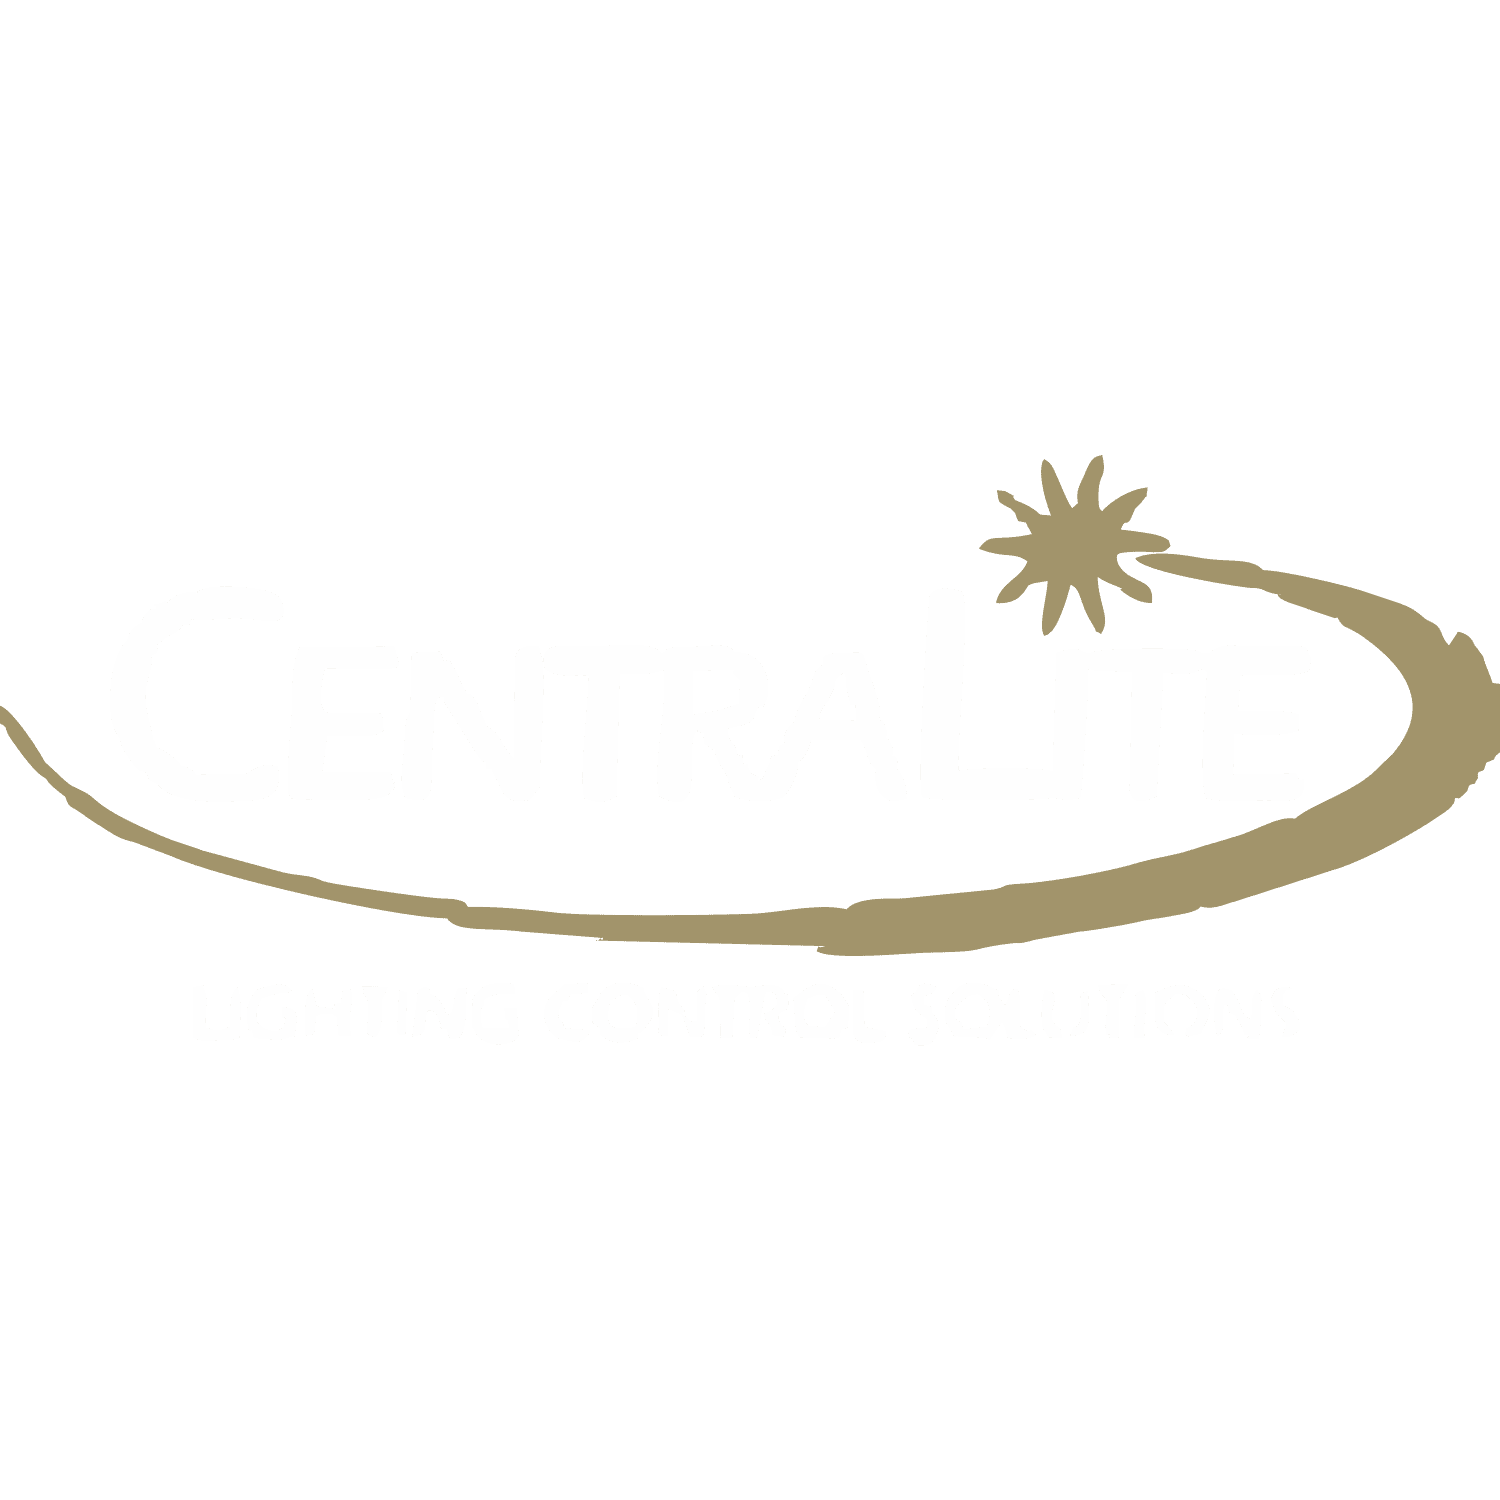 CentraLite Lighting Control Solutions Lighting System